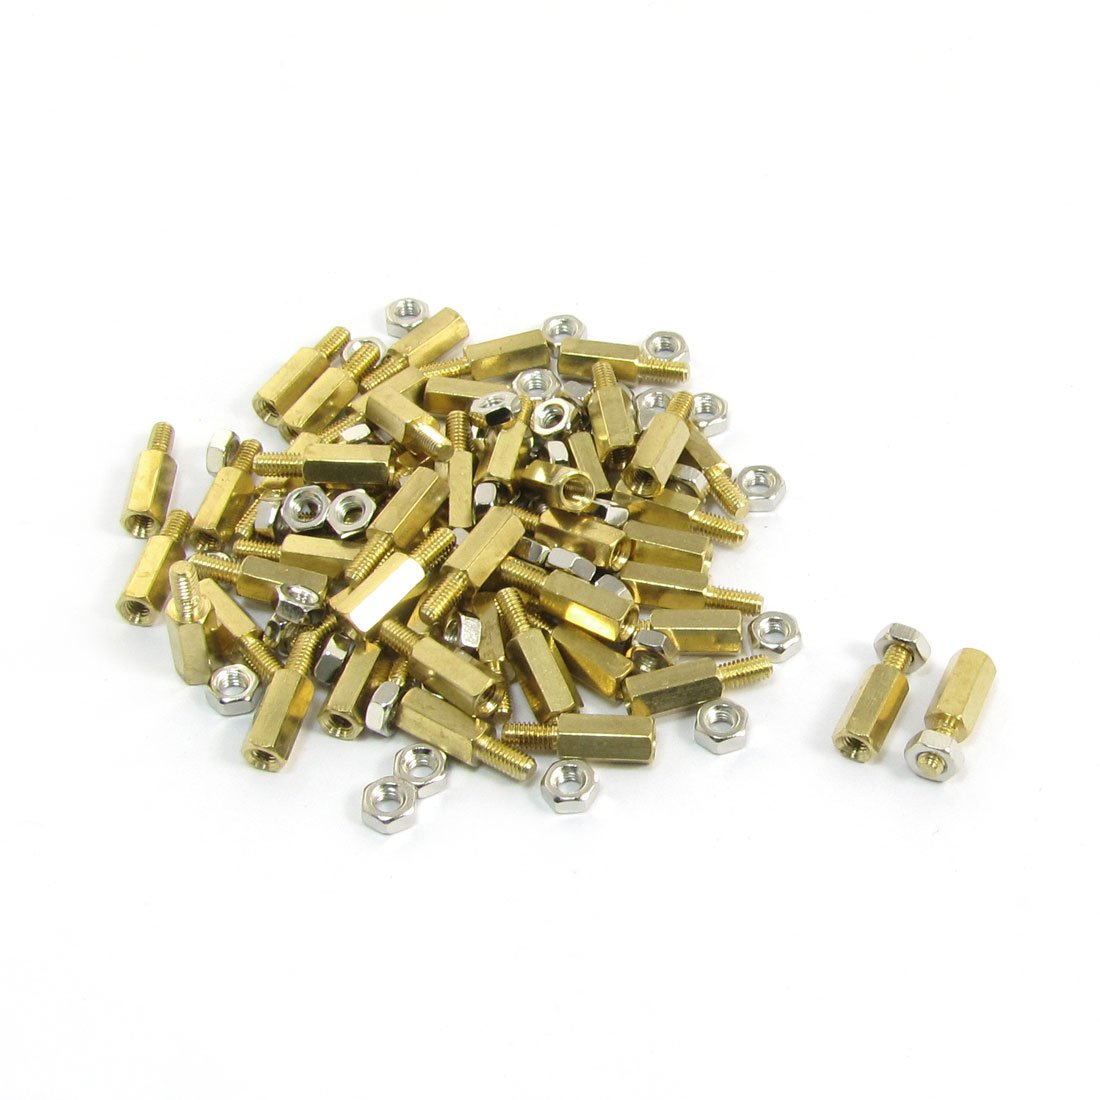 Clos 10mm Body Long M3x6mm Male Female Brass Pillar